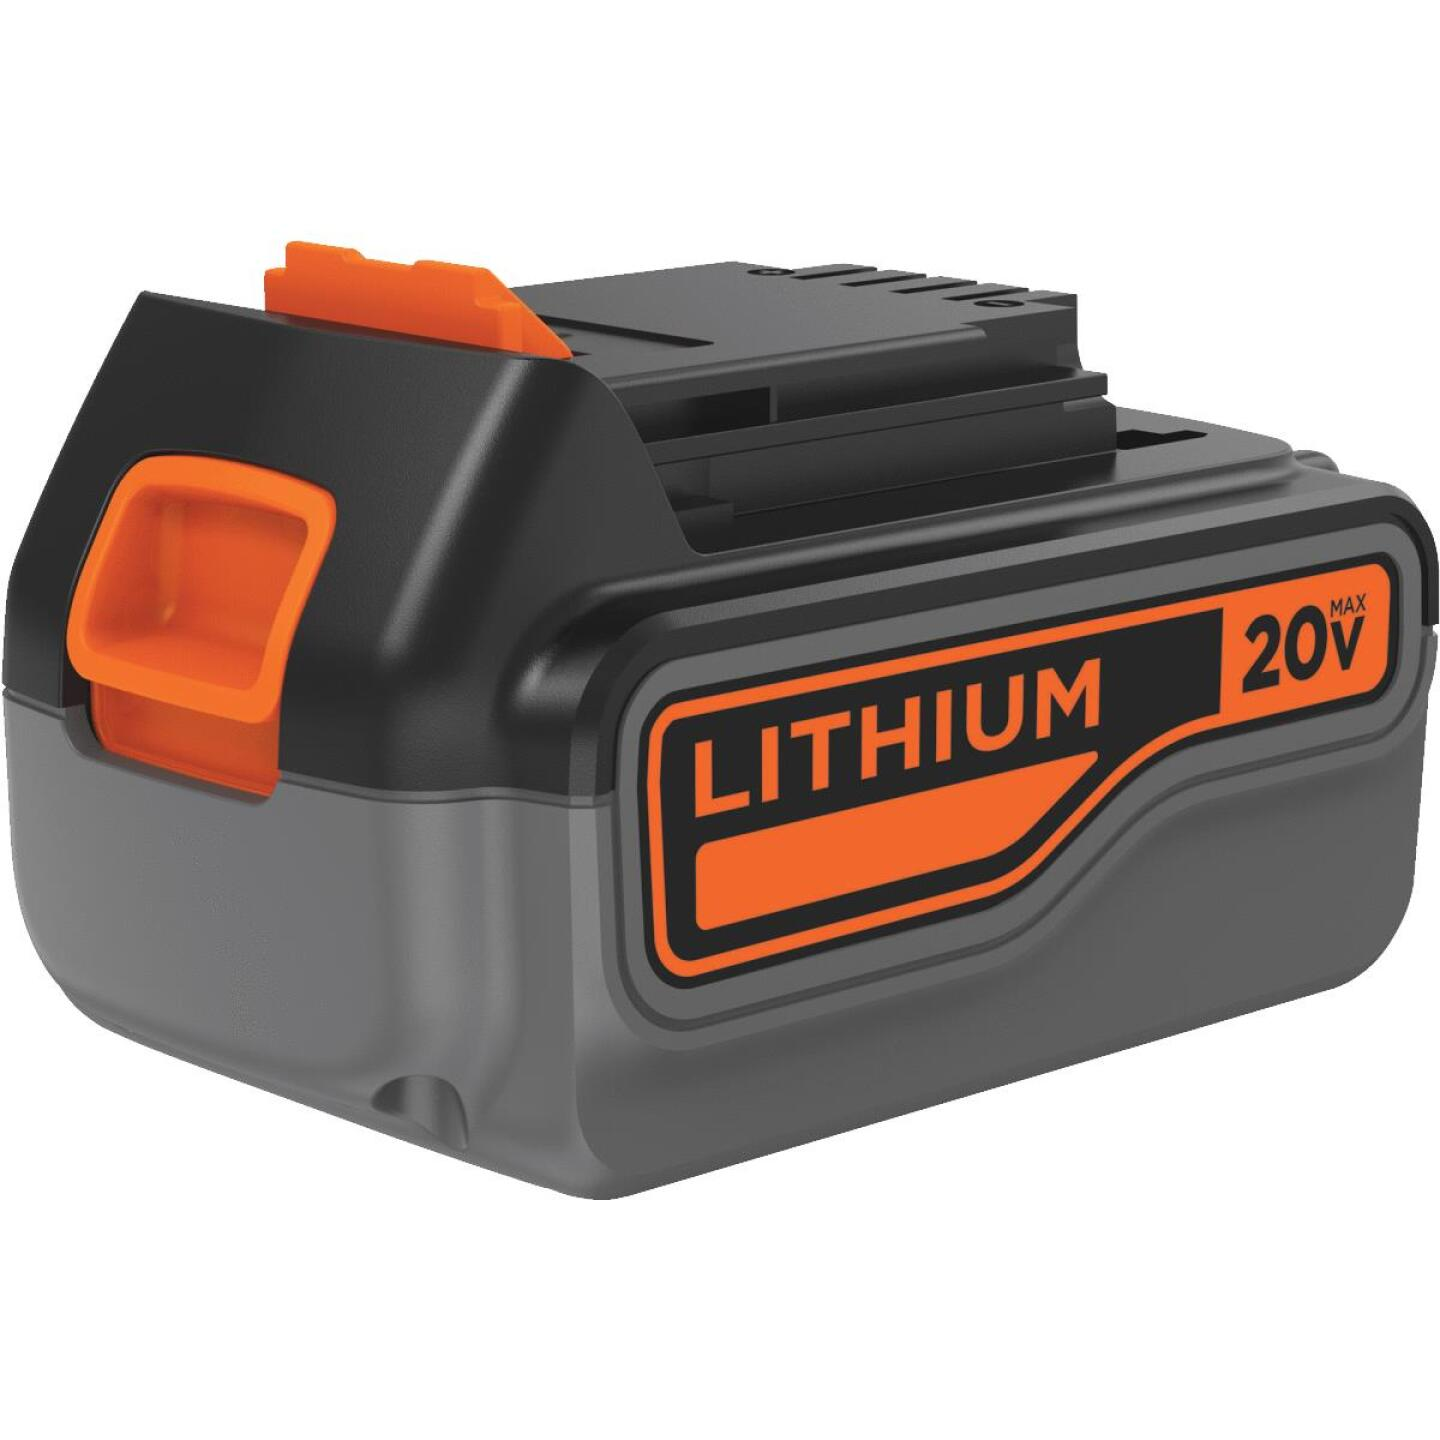 Black & Decker 20V MAX 3.0 Ah Tool Replacement Battery Image 1